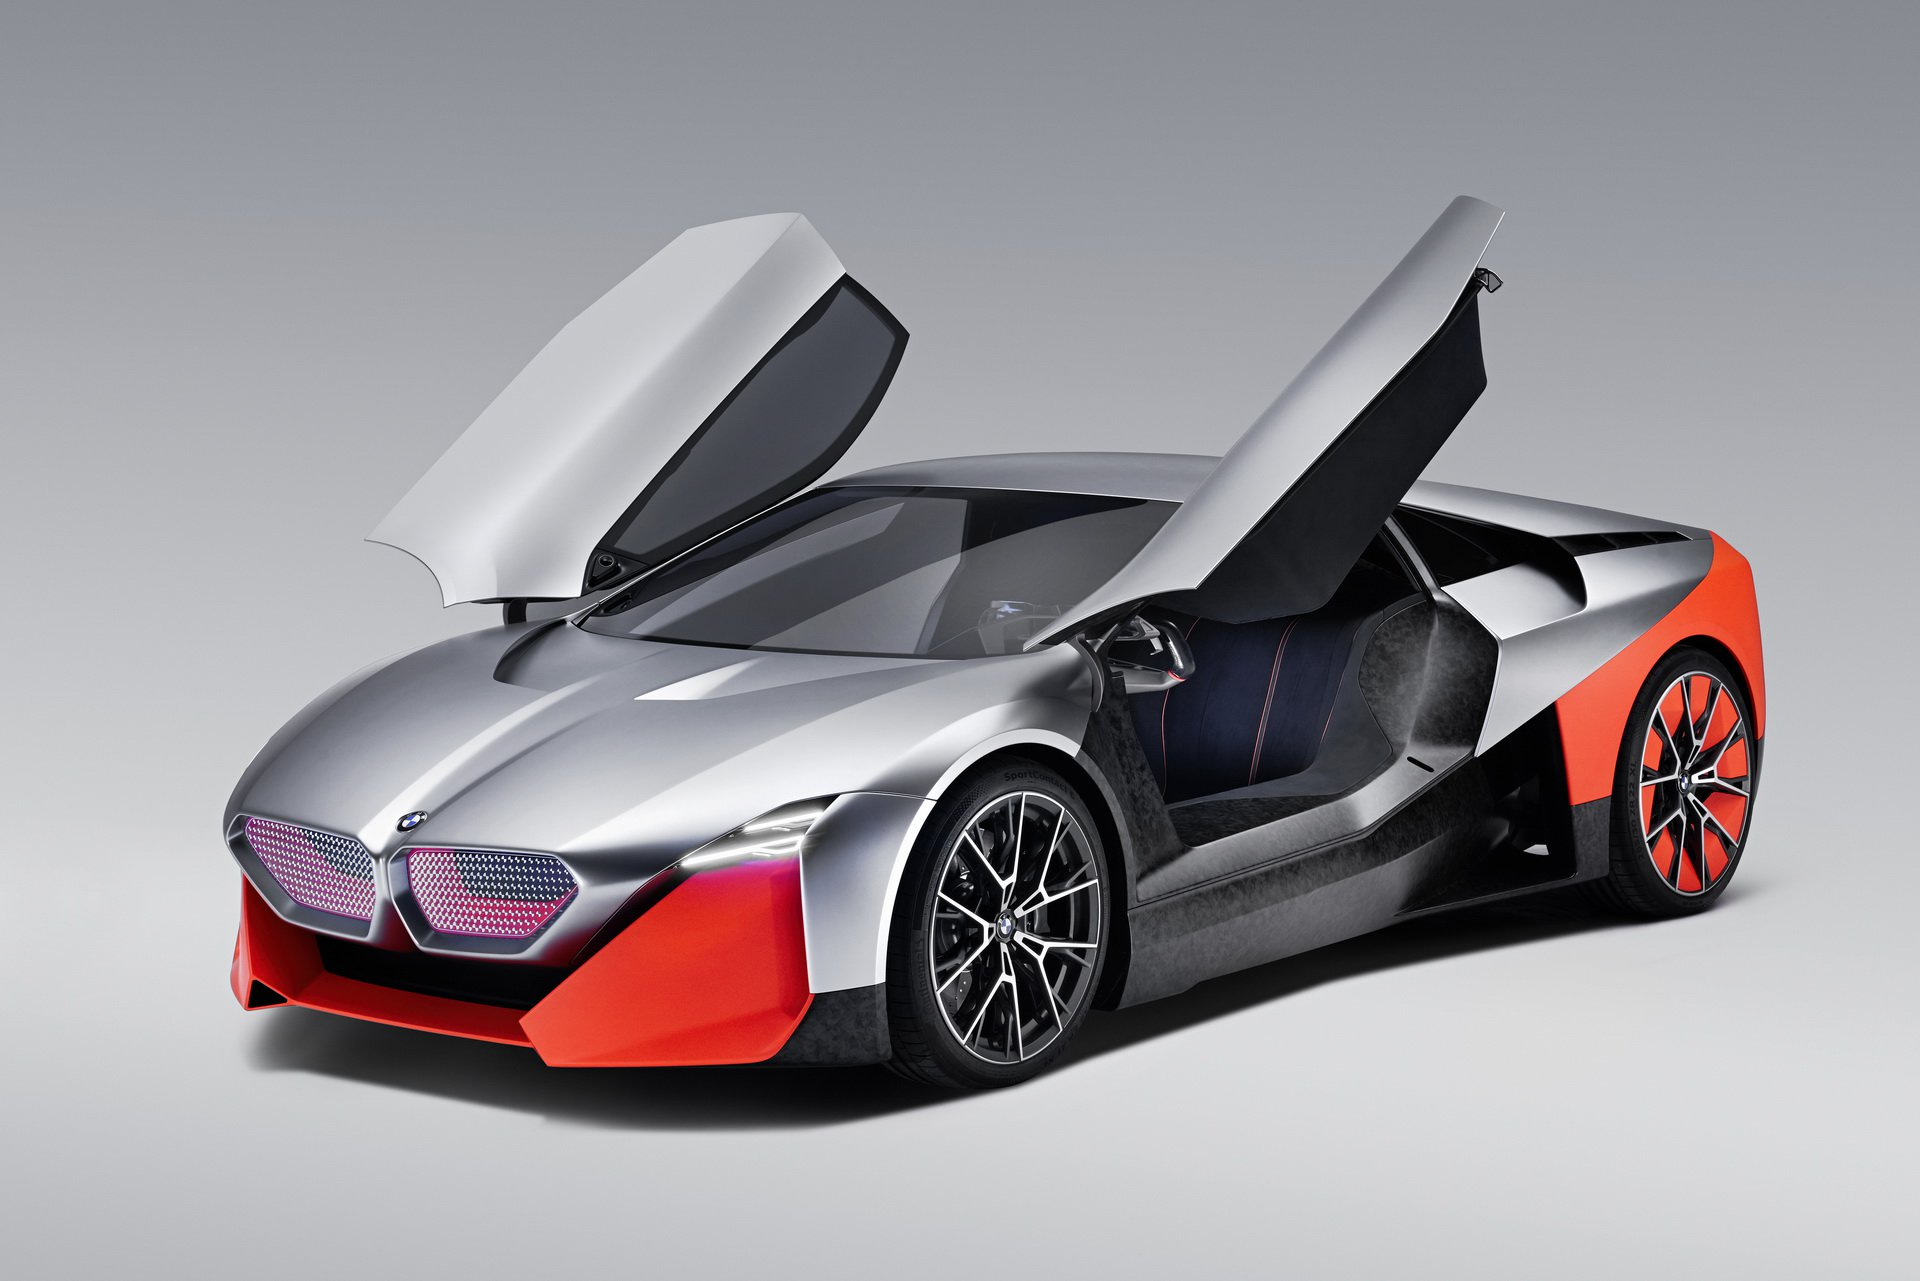 200fa6d9-bmw-m-next-vision-production-1